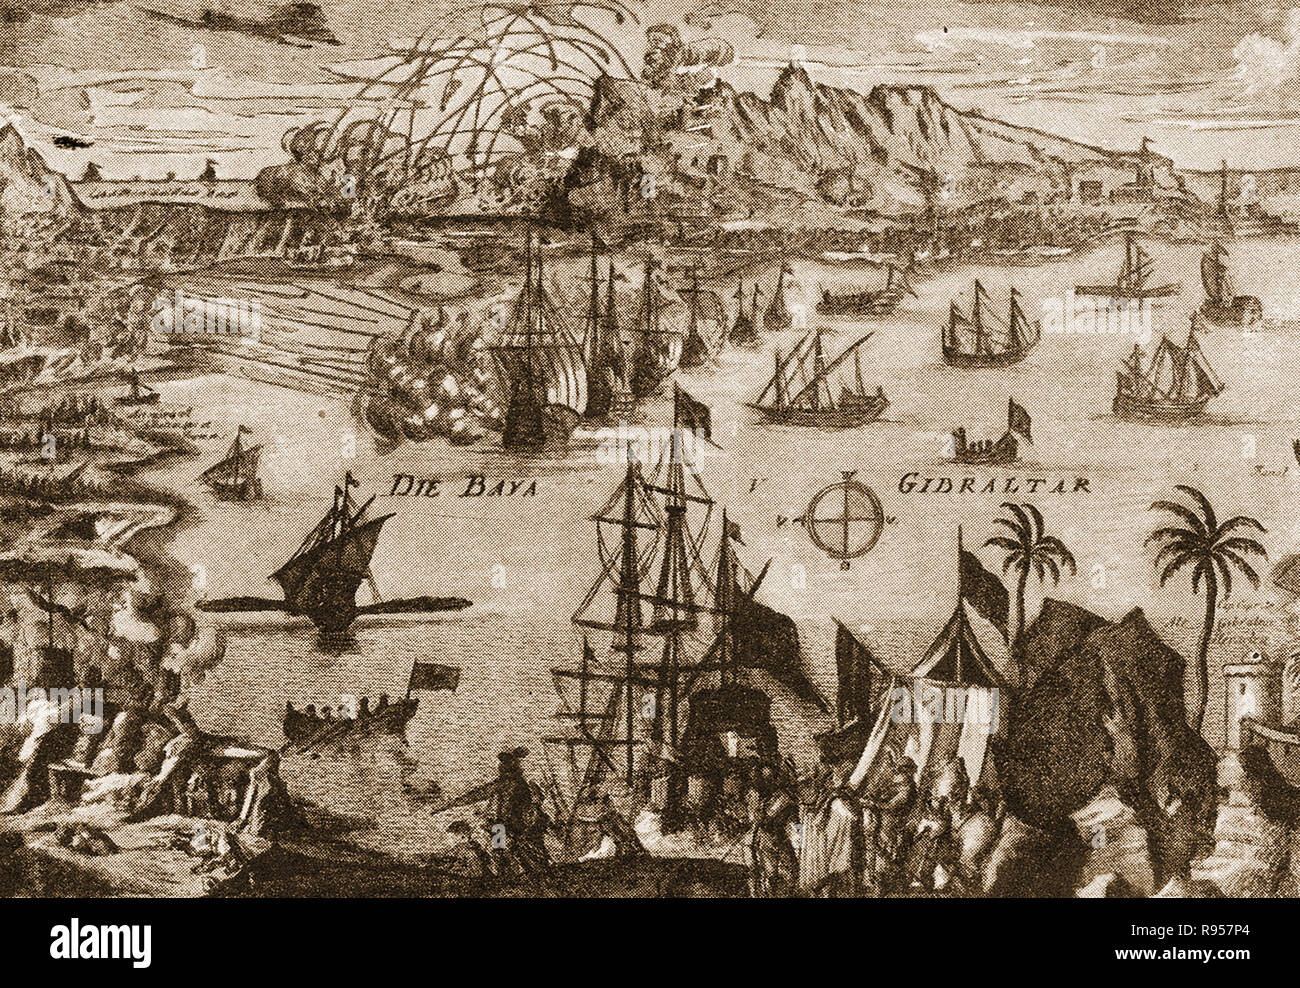 An old print showing the unsuccessful  Spanish (with the French Navy) attempt to regain Gibraltar from the British in 1772 despite a long siege (The great siege of Gibraltar) during the American War of Independence. At three years and seven months, It was the longest siege endured by the British Armed Forces and one of the longest sieges known to history. - Stock Image